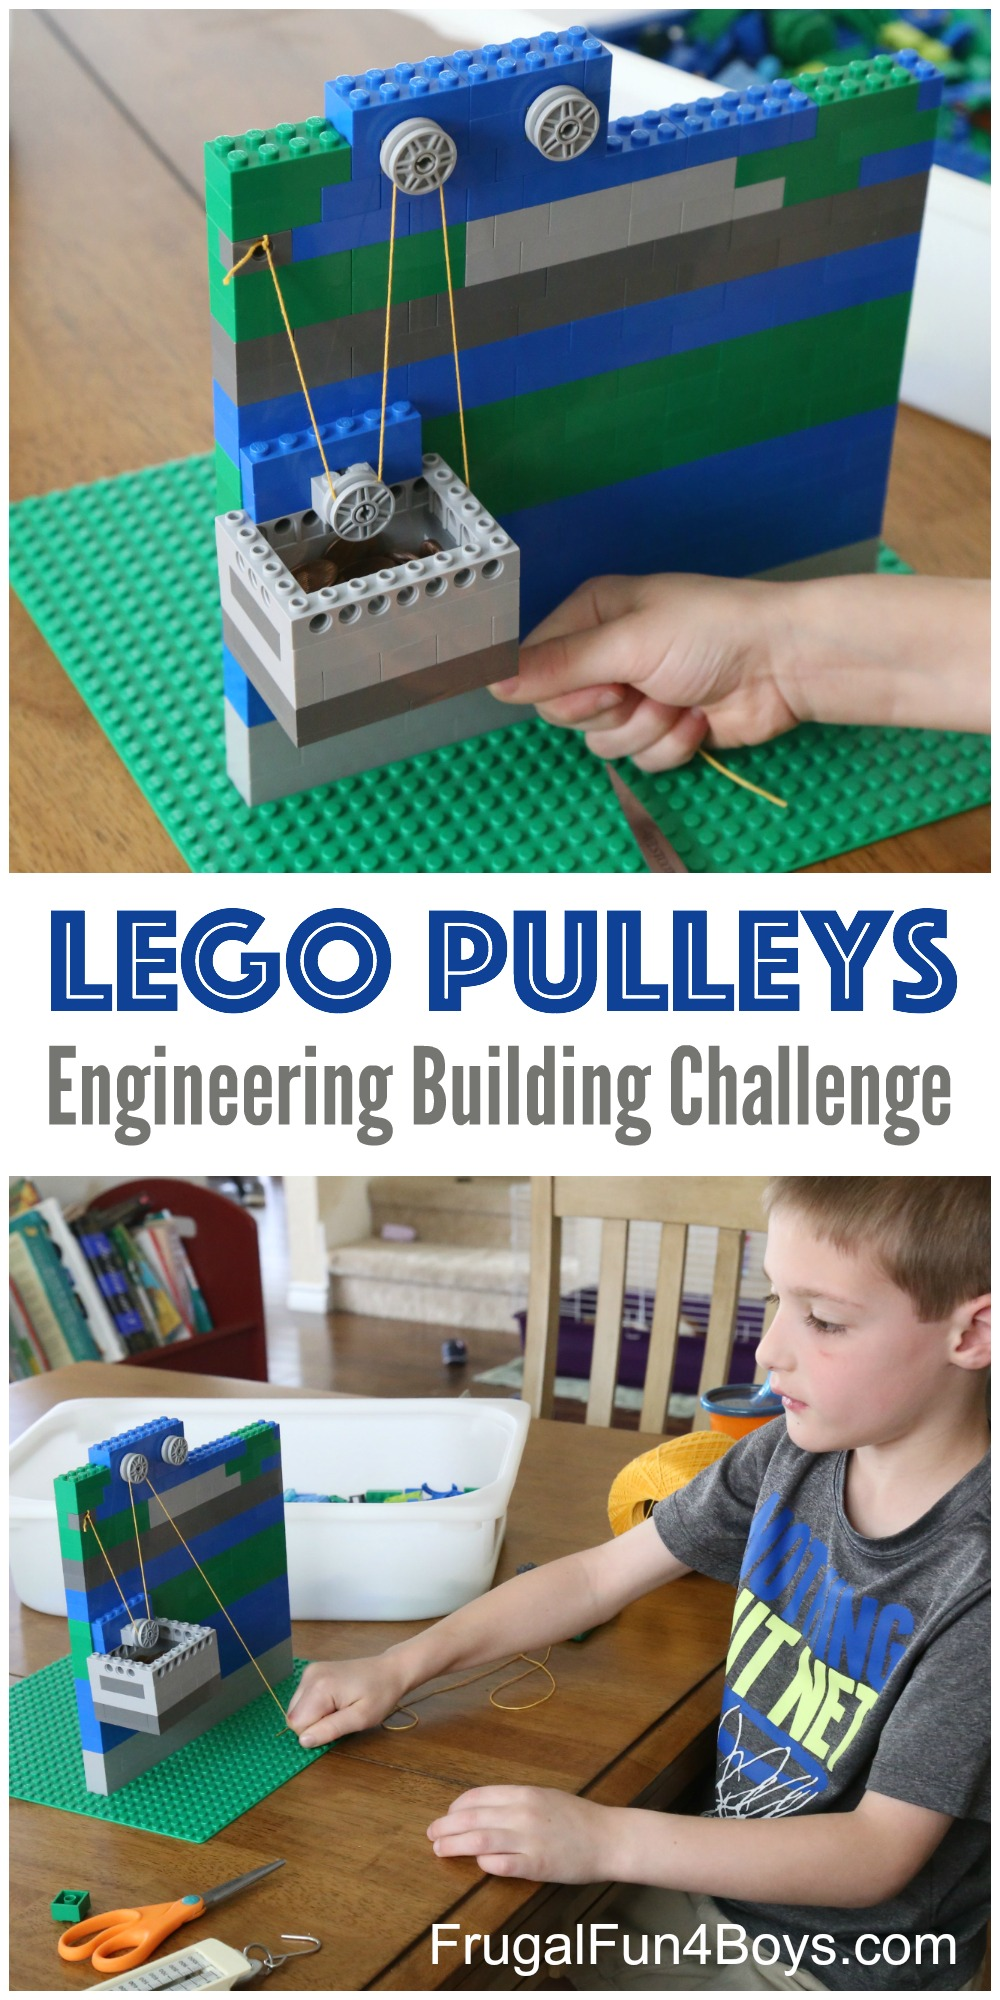 LEGO Pulleys Engineering Building Challenge